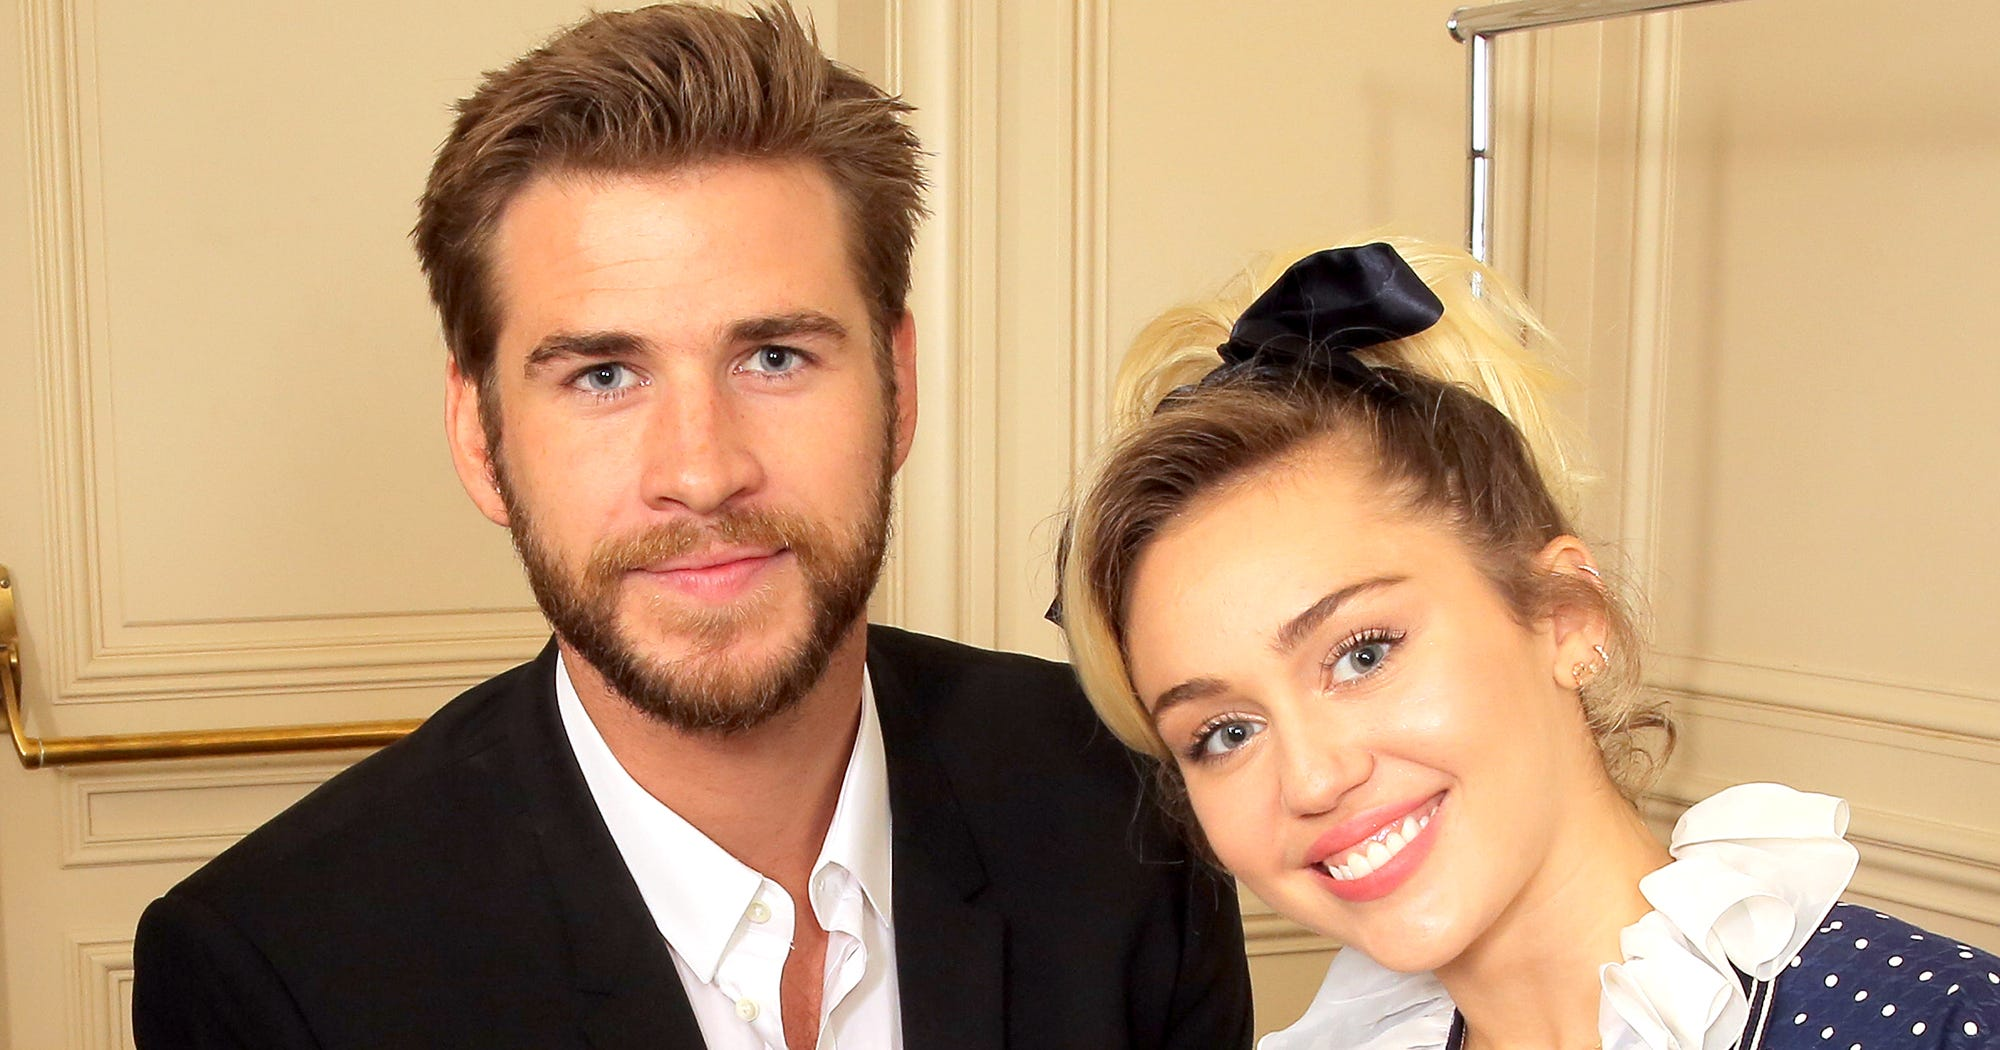 This Kissing Selfie Of Miley Cyrus & Liam Hemsworth Is Mystifying